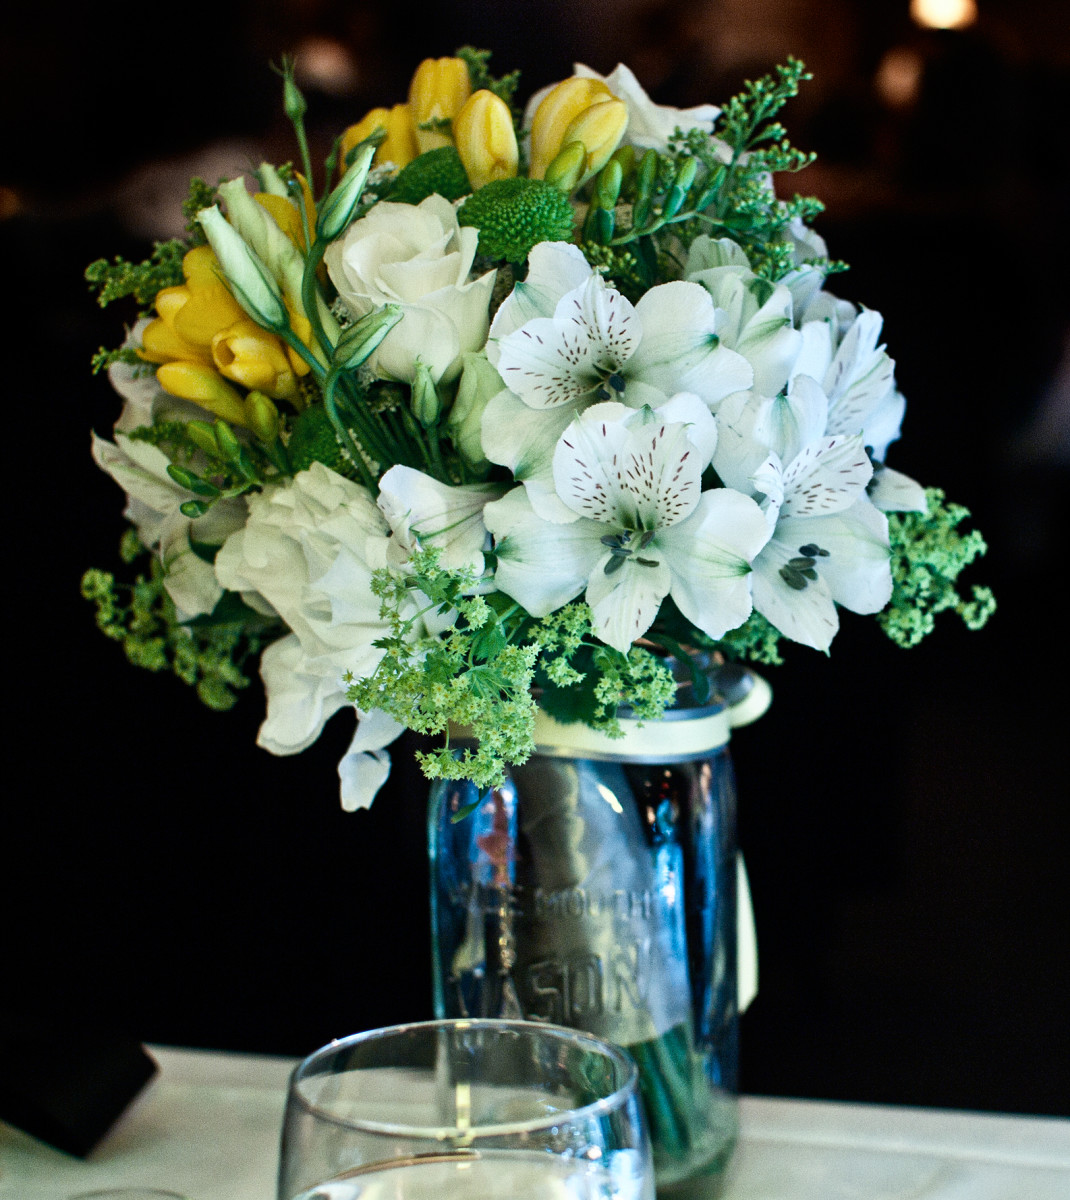 Mason jars make whimsical vases for real or fake flower bouquets.